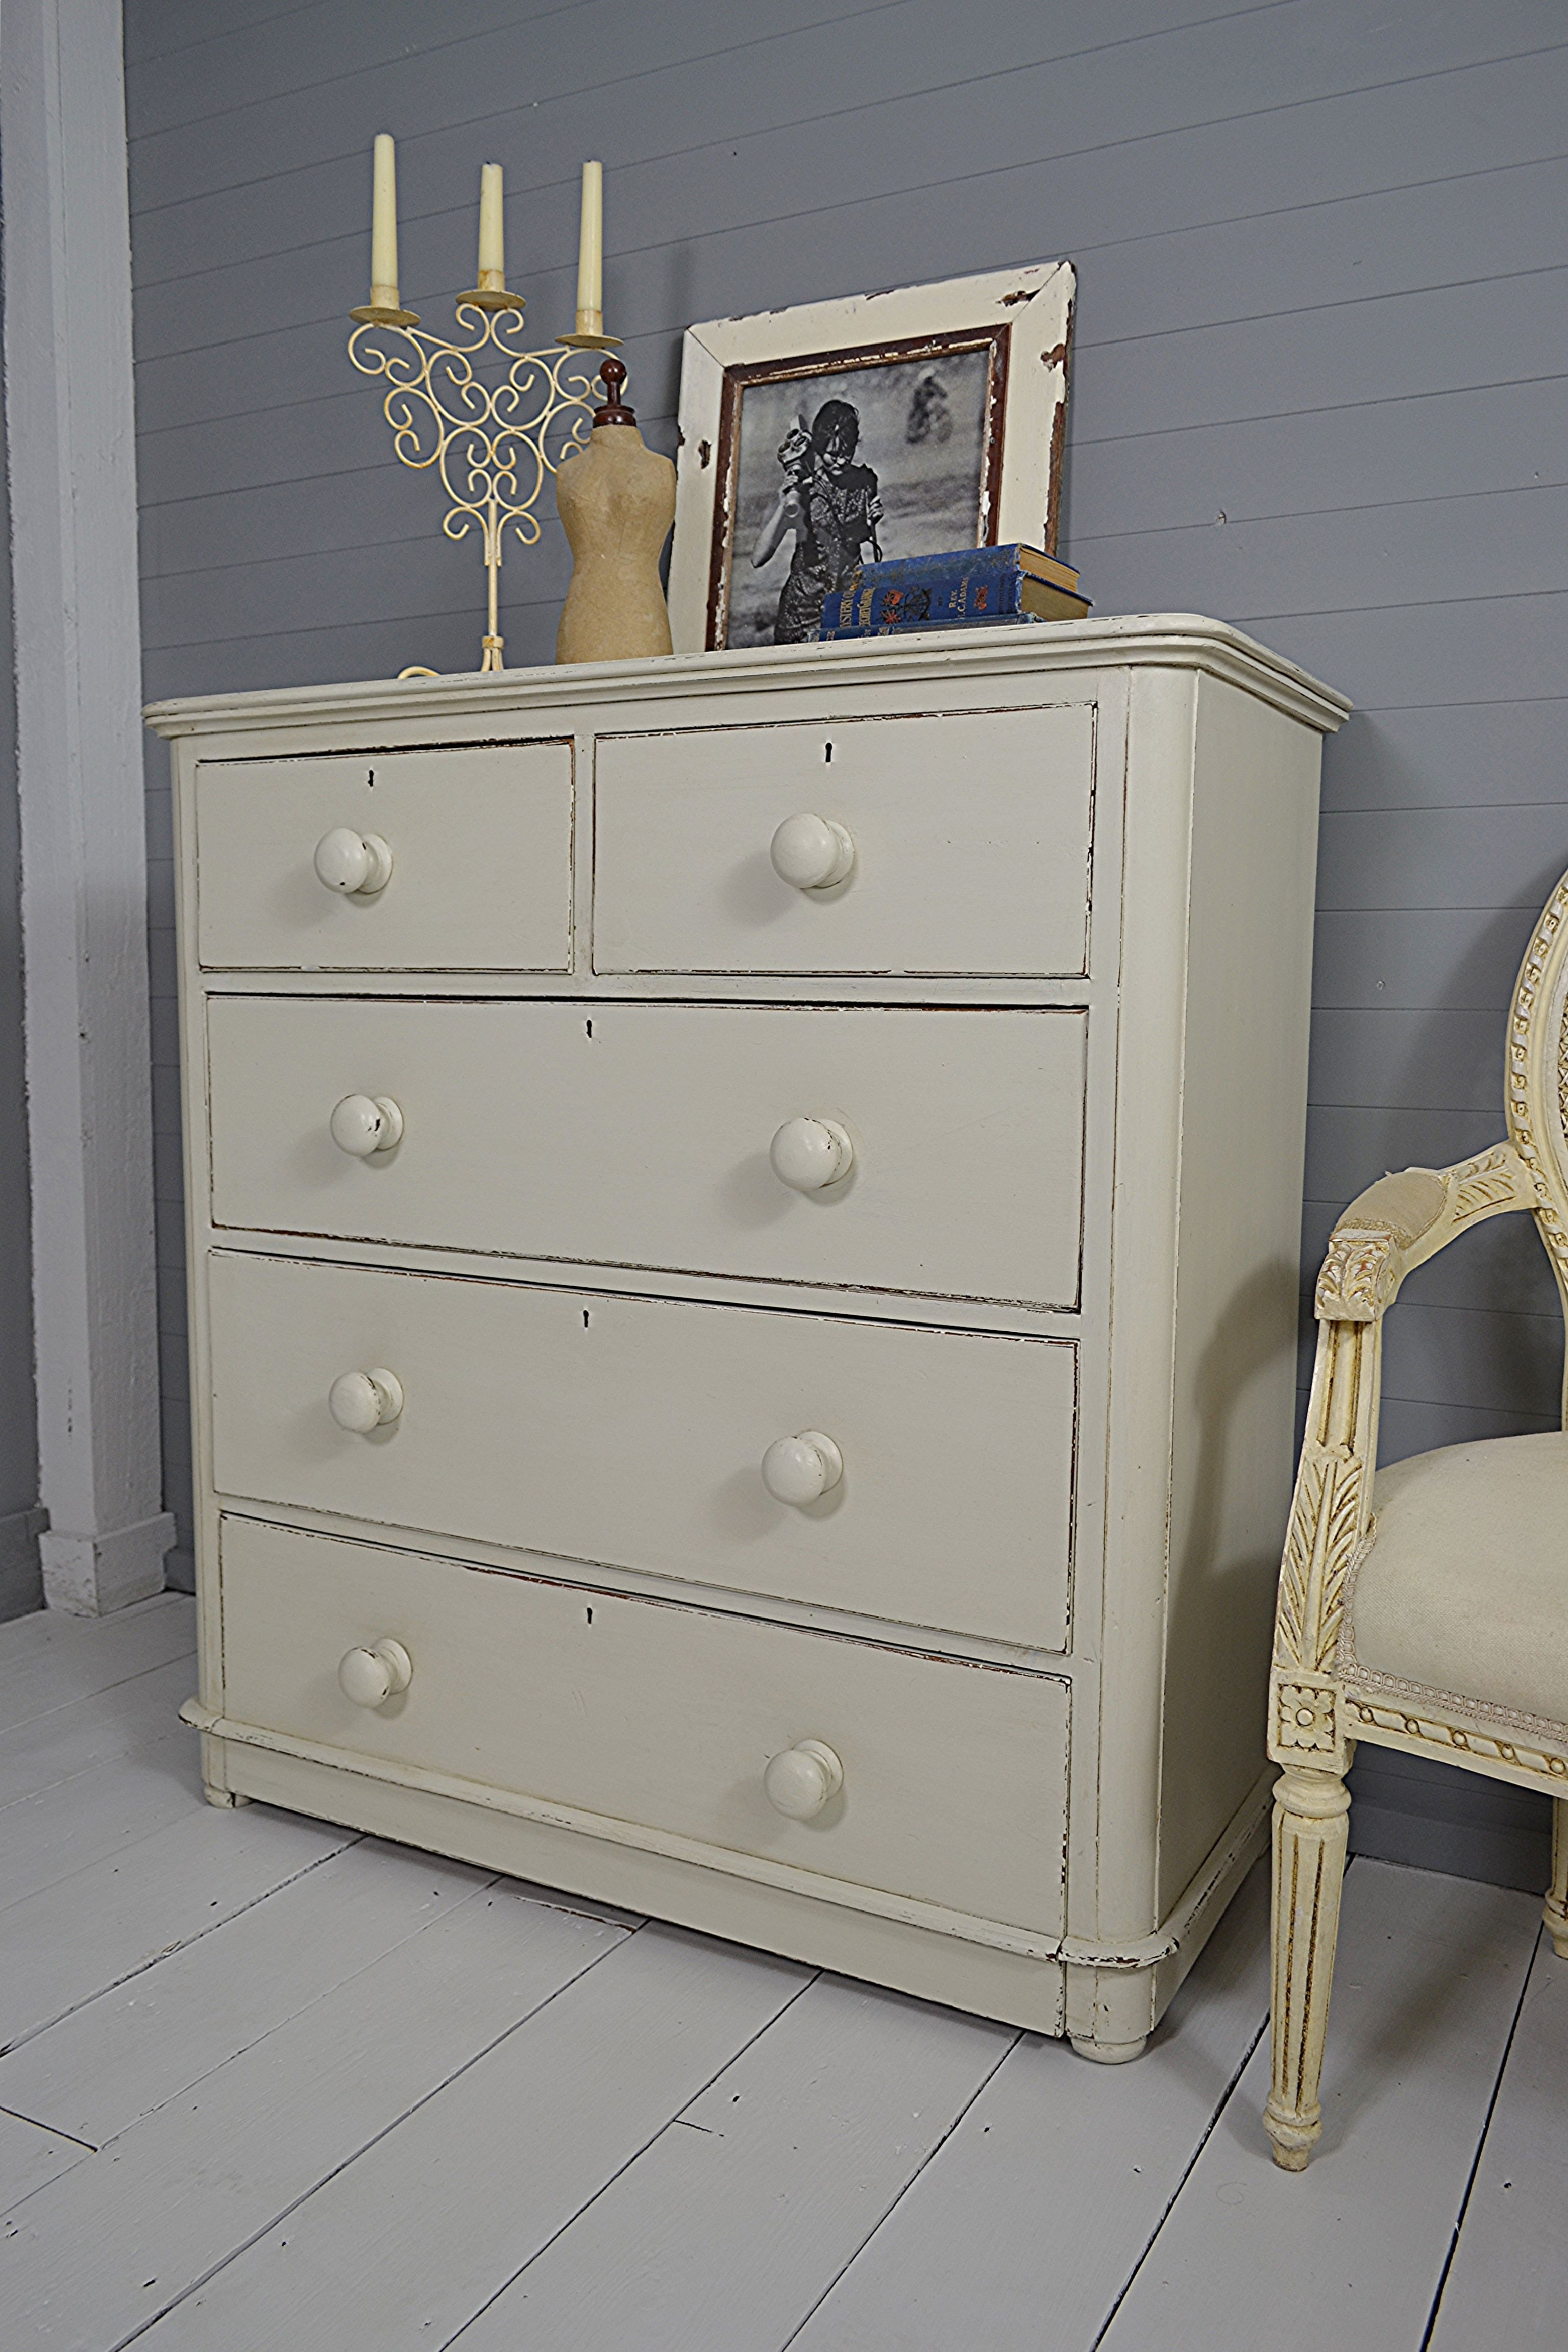 Lovely Tall Sideboard Shabby Chic Bedroom Furniture Shabby Chic Dresser Painted Bedroom Furniture [ 4608 x 3072 Pixel ]